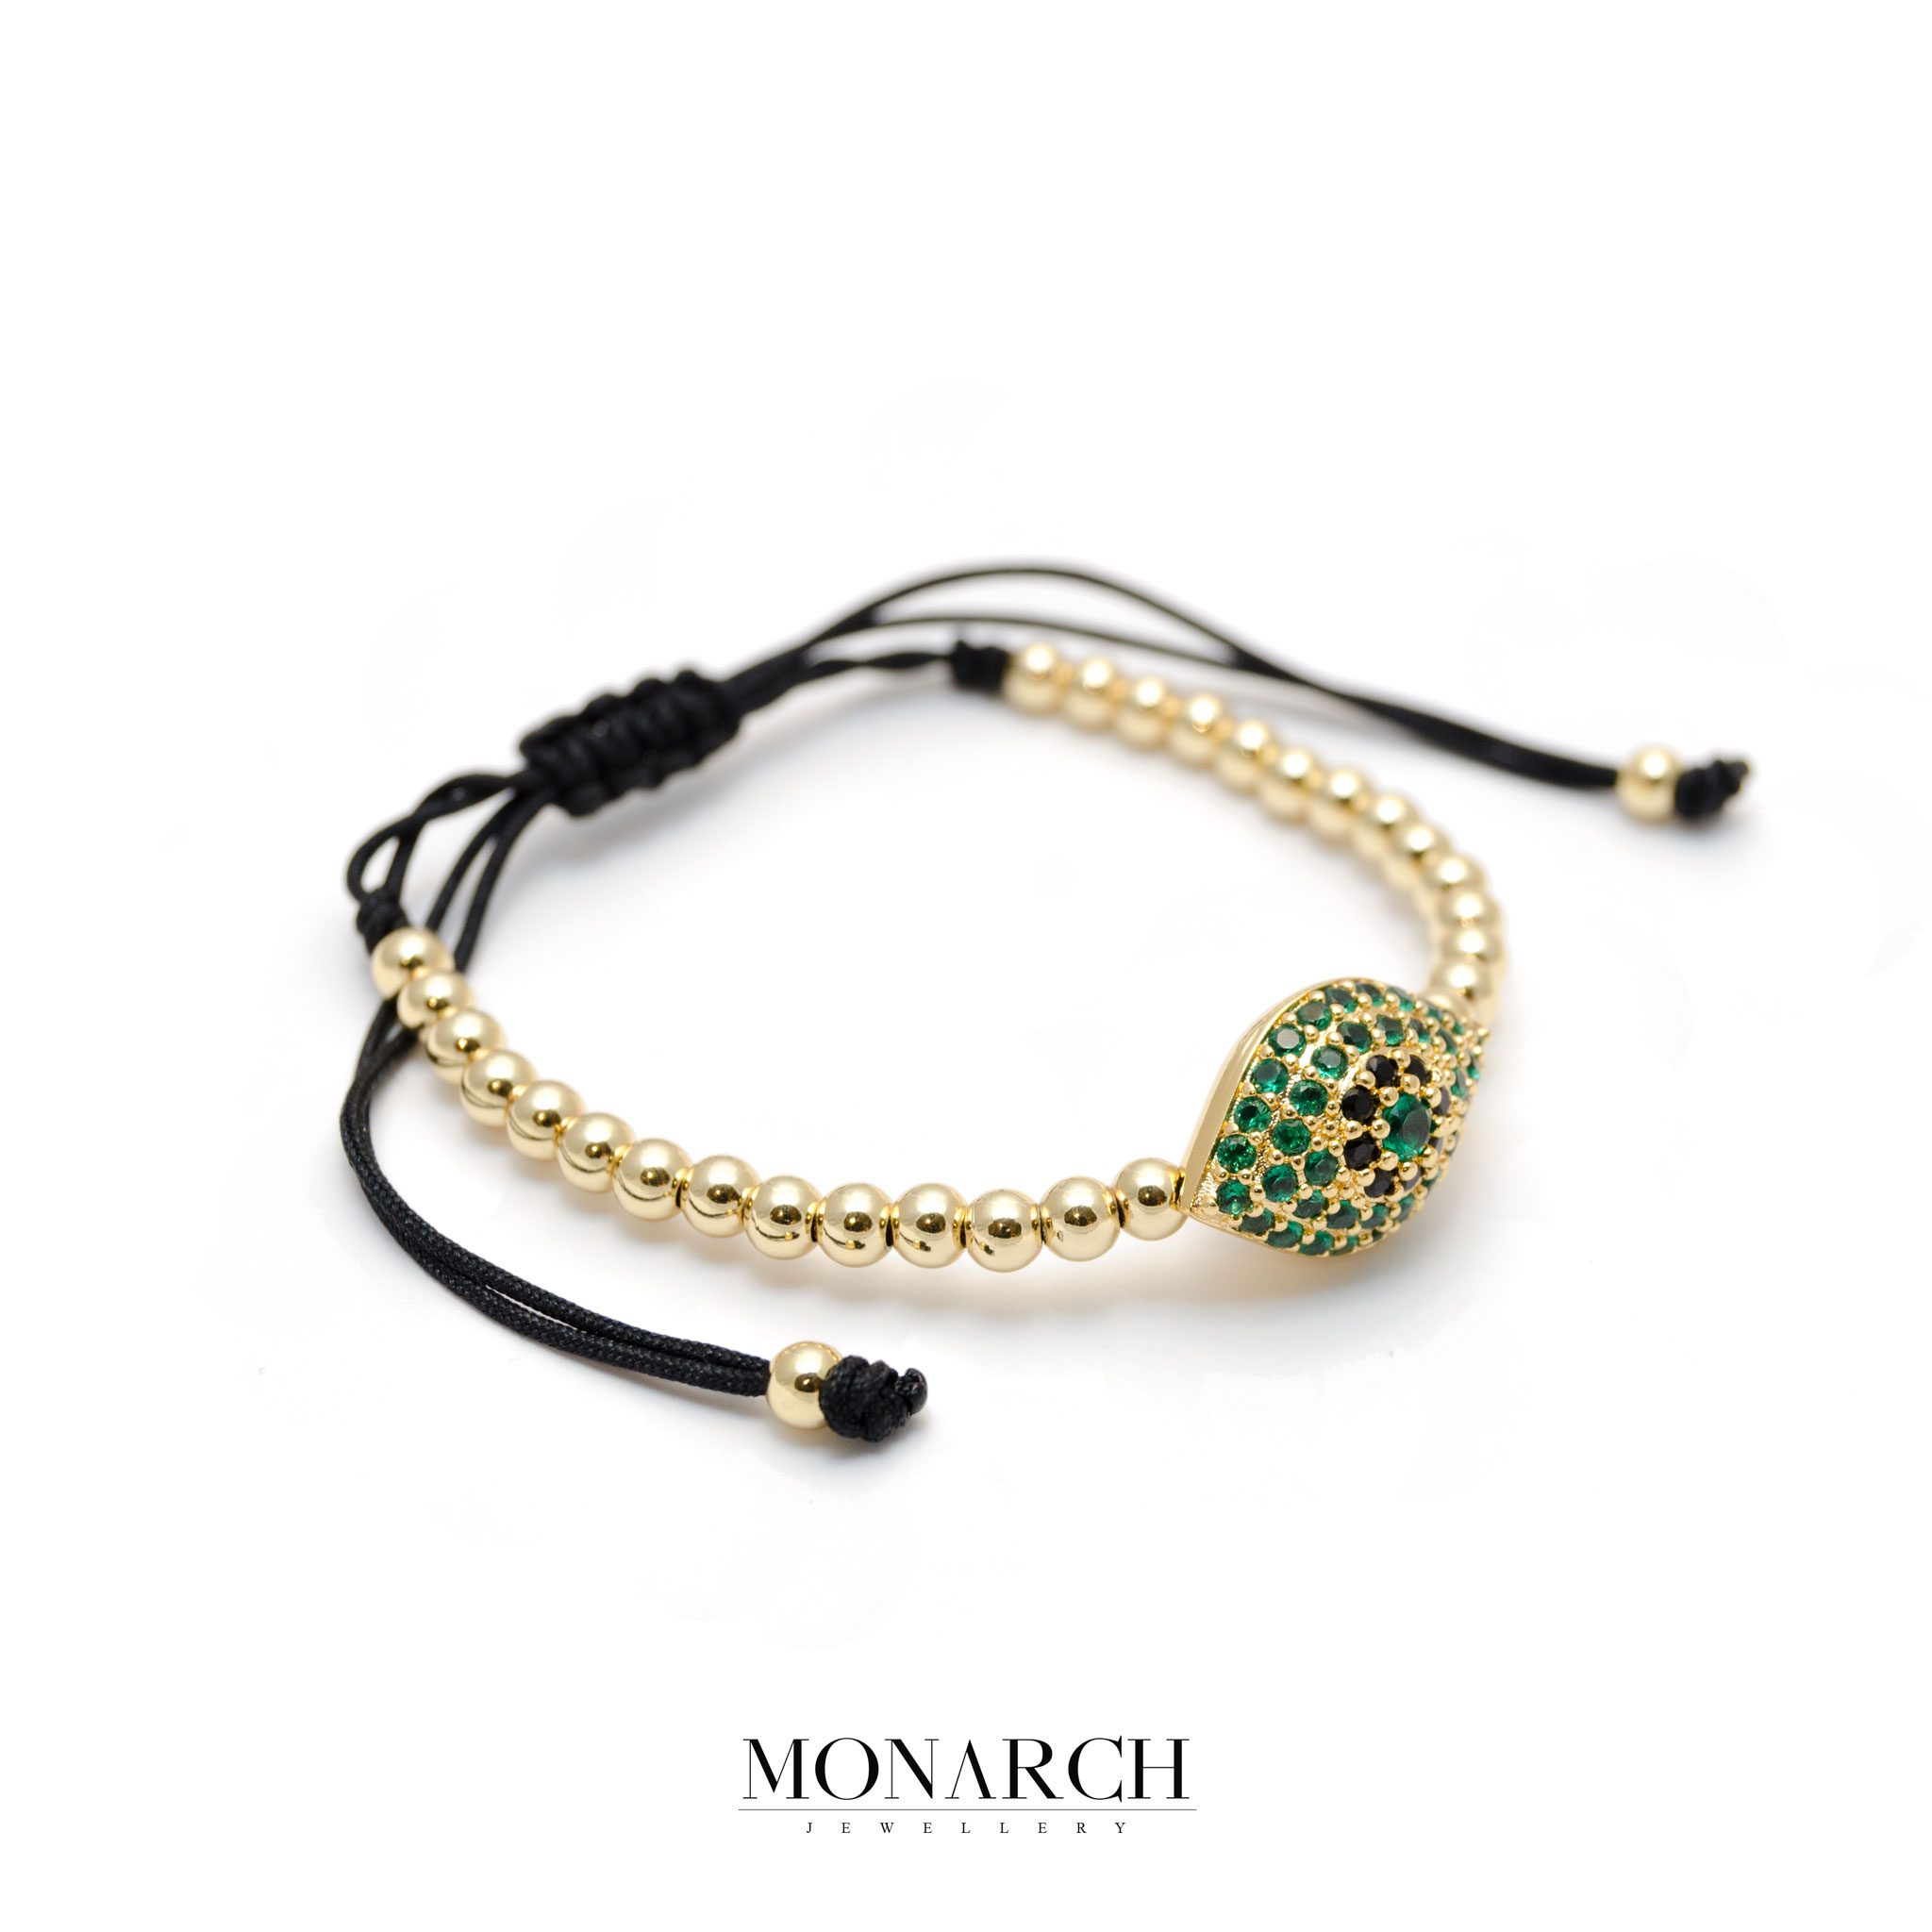 Monarch Jewellery 24k Gold Emerald Evil Eye Charm Macrame Bracelet